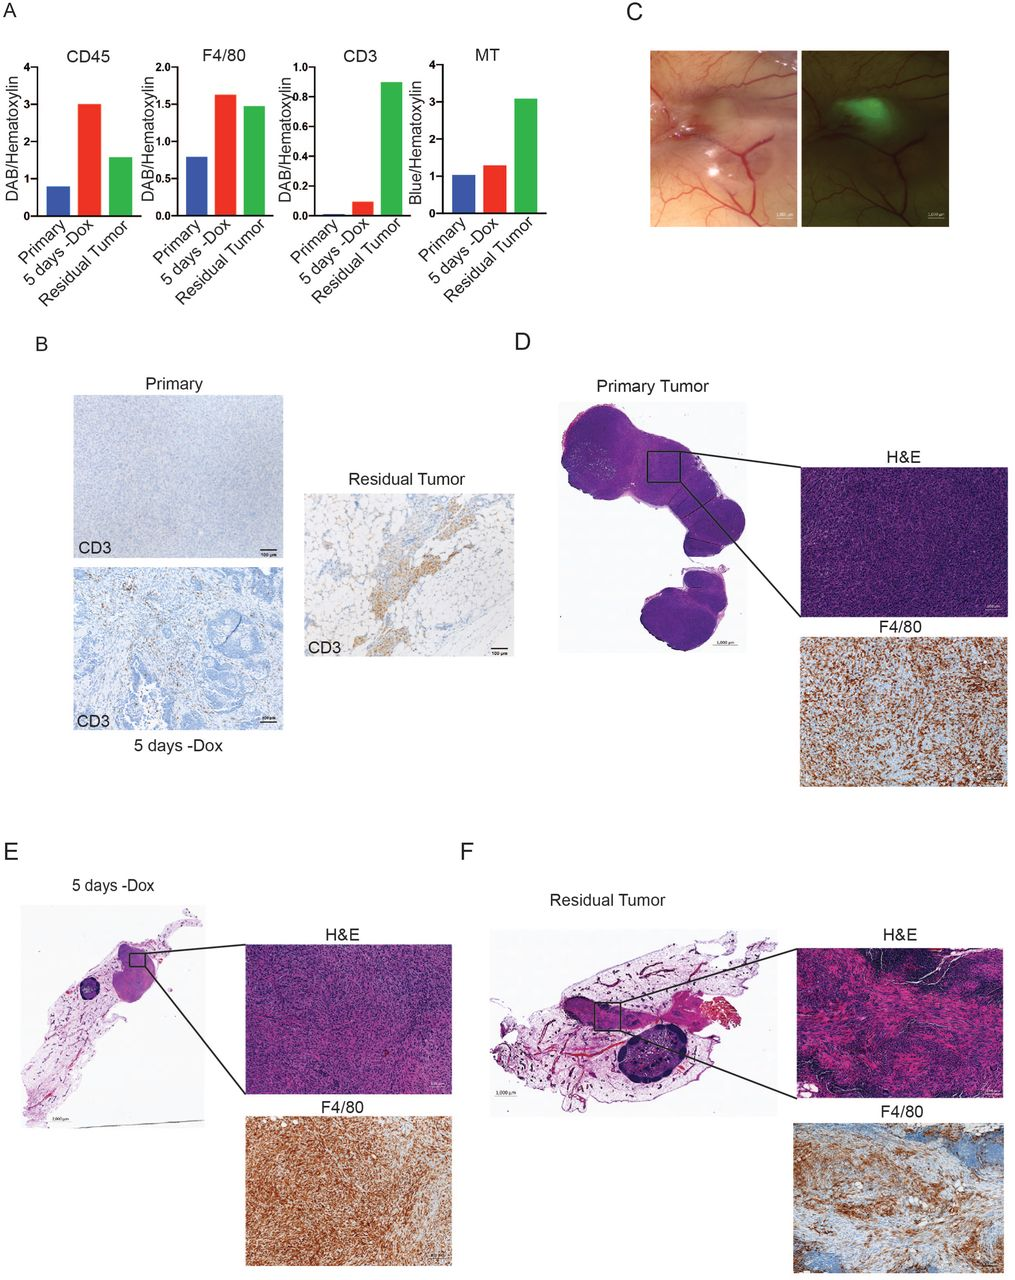 CCL5 promotes breast cancer recurrence through macrophage